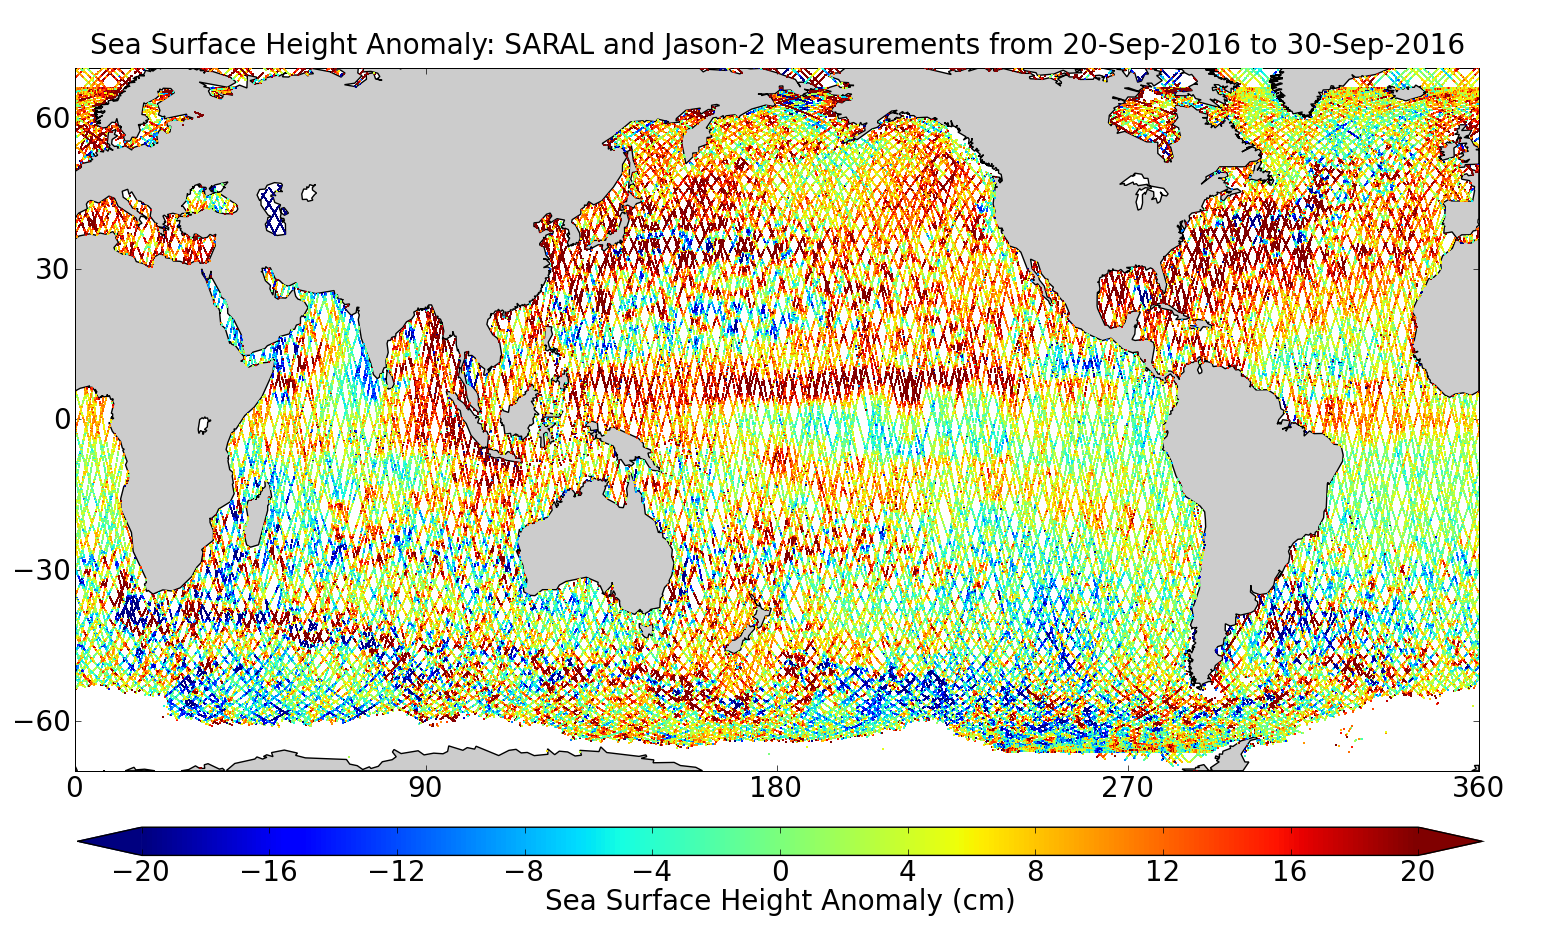 Sea Surface Height Anomaly: SARAL and Jason-2 Measurements from 20-Sep-2016 to 30-Sep-2016